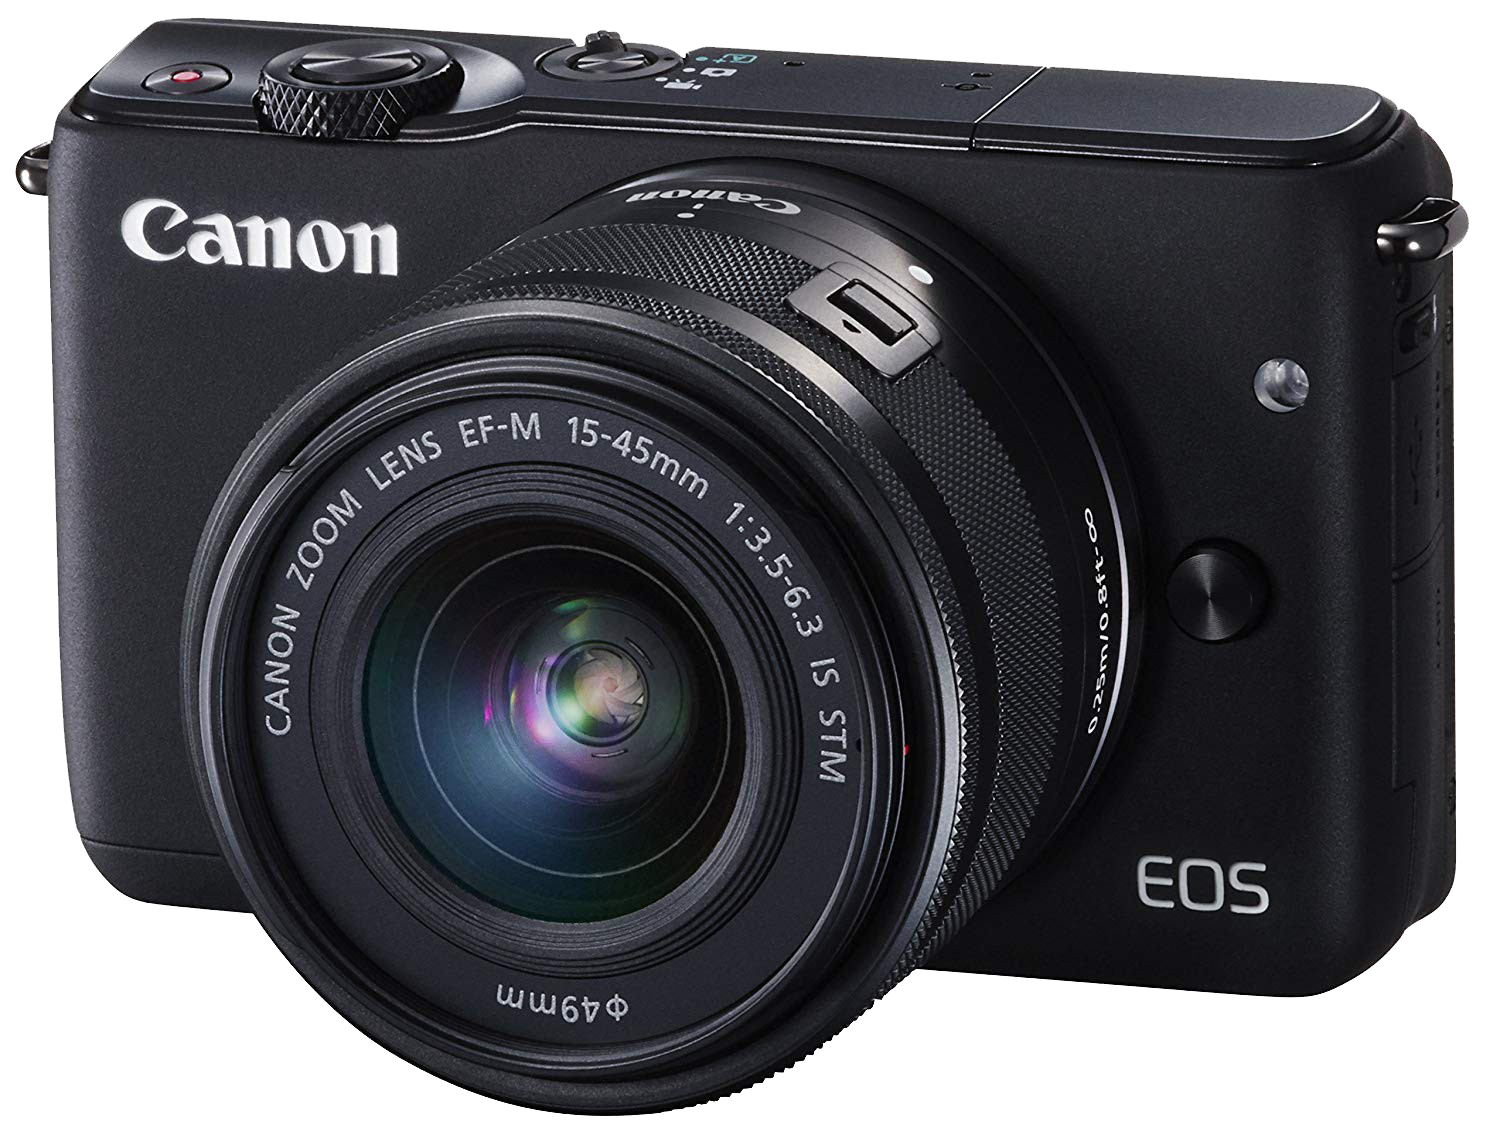 Canon Camera PNG Free Background.